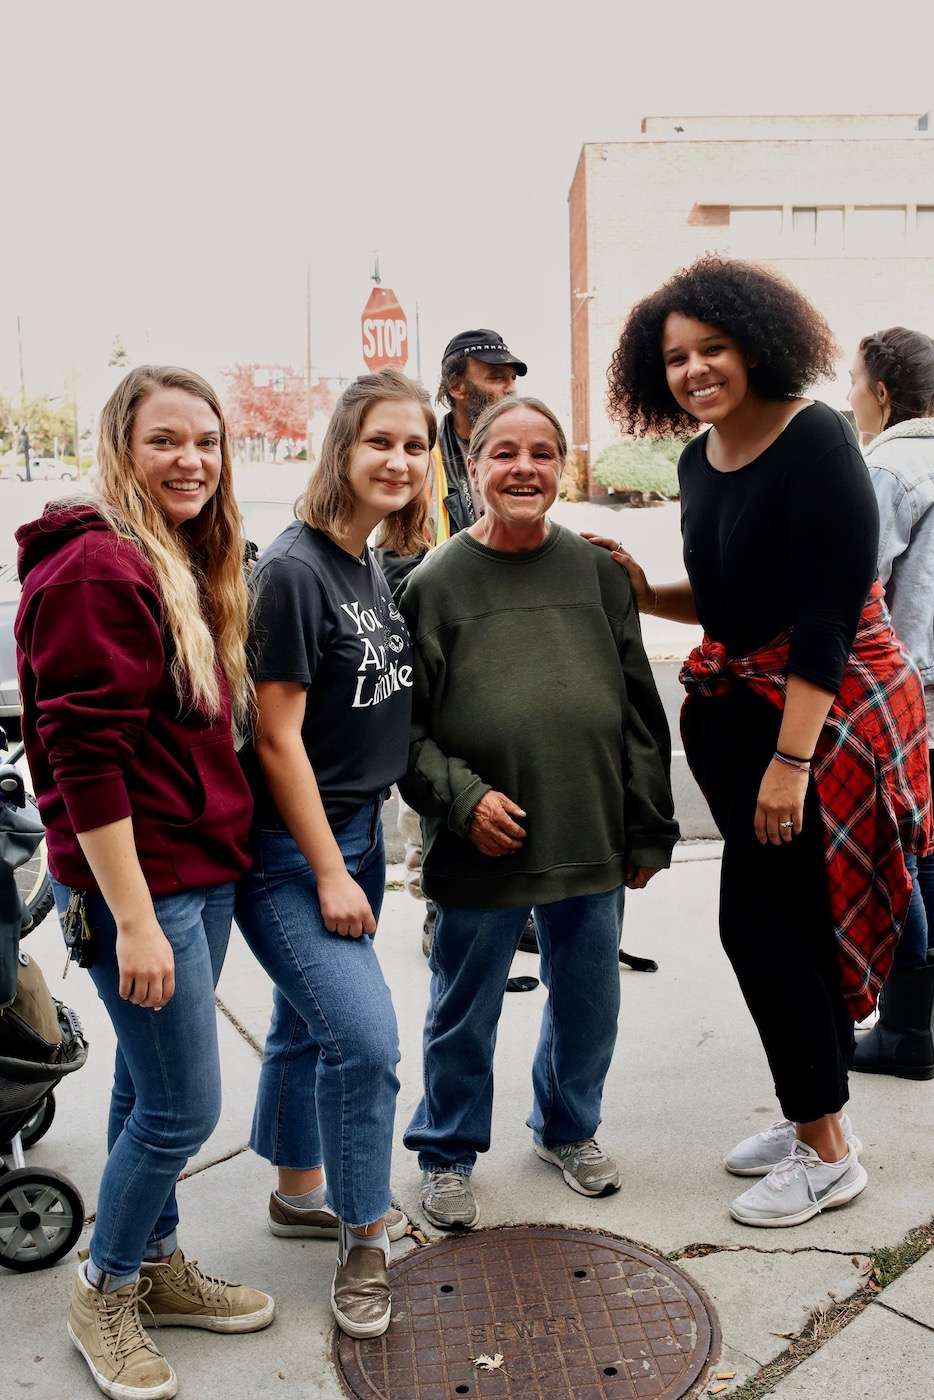 Neighbor Idaho volunteers with homeless woman